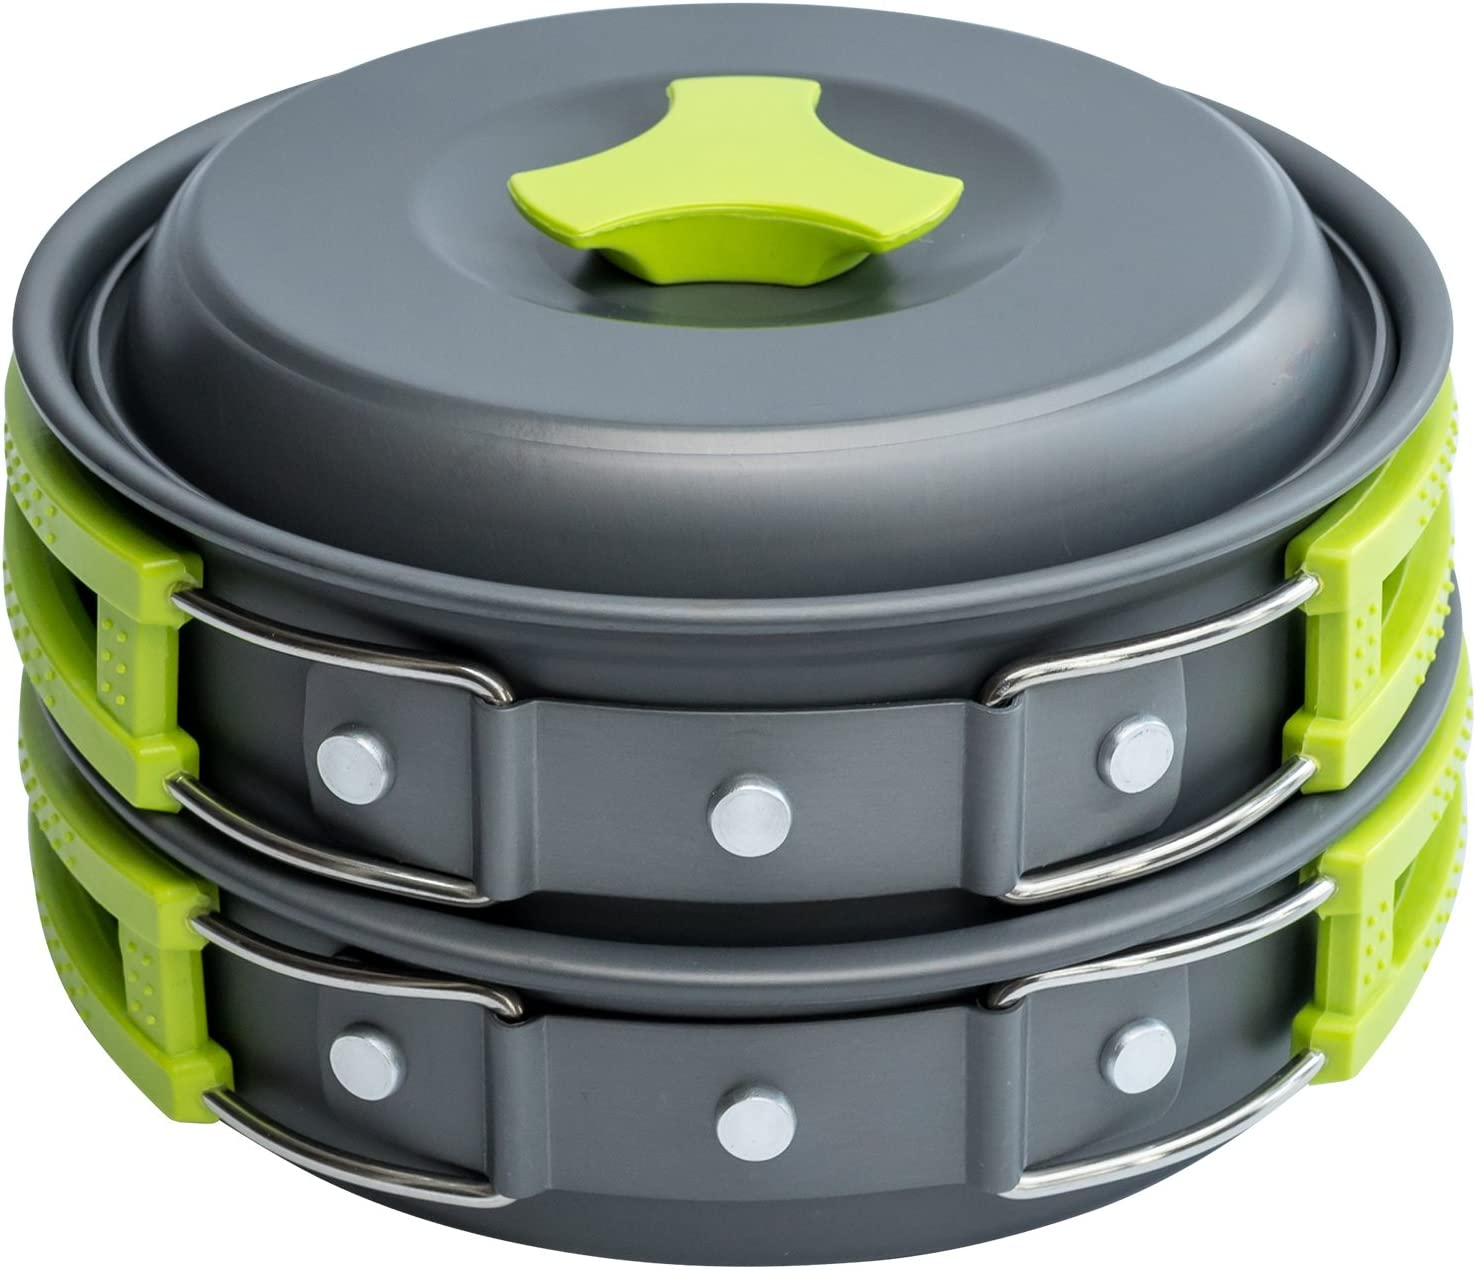 MalloMe Camping Cookware Backpacking Mess Kit